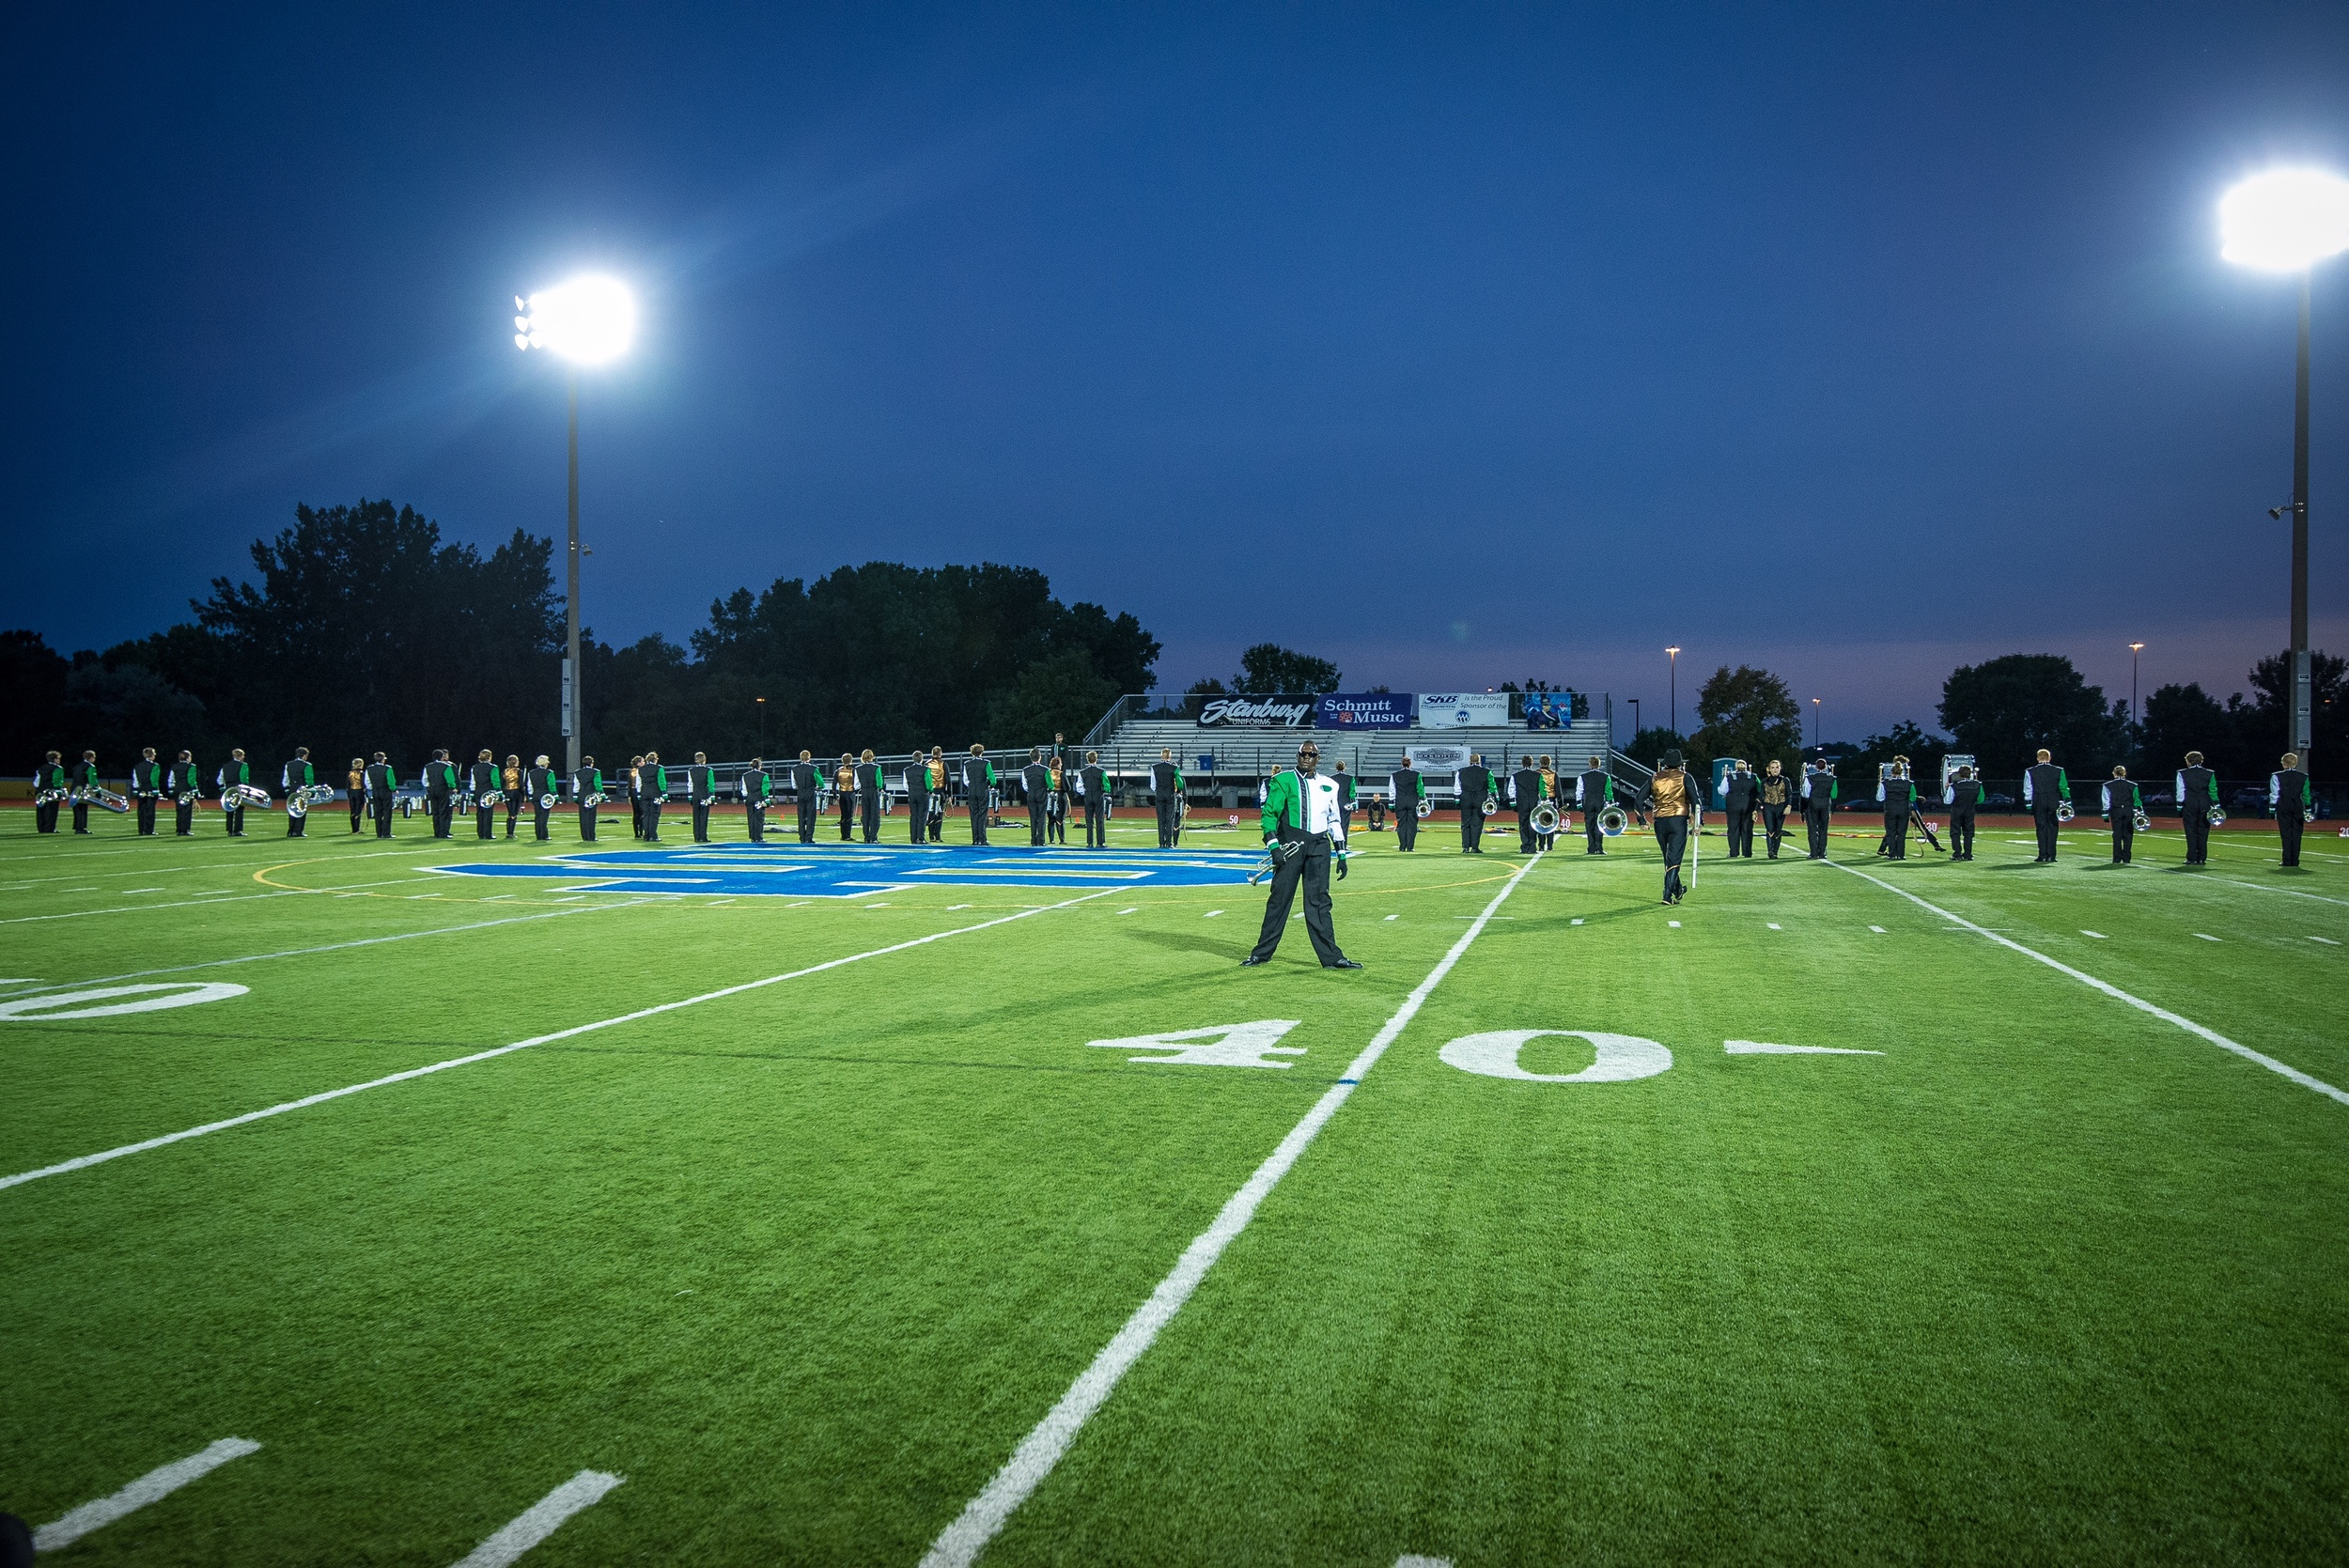 """Govenaires Hornline Member Bobby finishes playing a solo to end a segment of the 2015 production""""Outlaw"""" at the Sounds of Minnesota show hosted at St. Thomas Academy in August   Photo provided by TwinCitiesMedia.net   Full Resolution"""